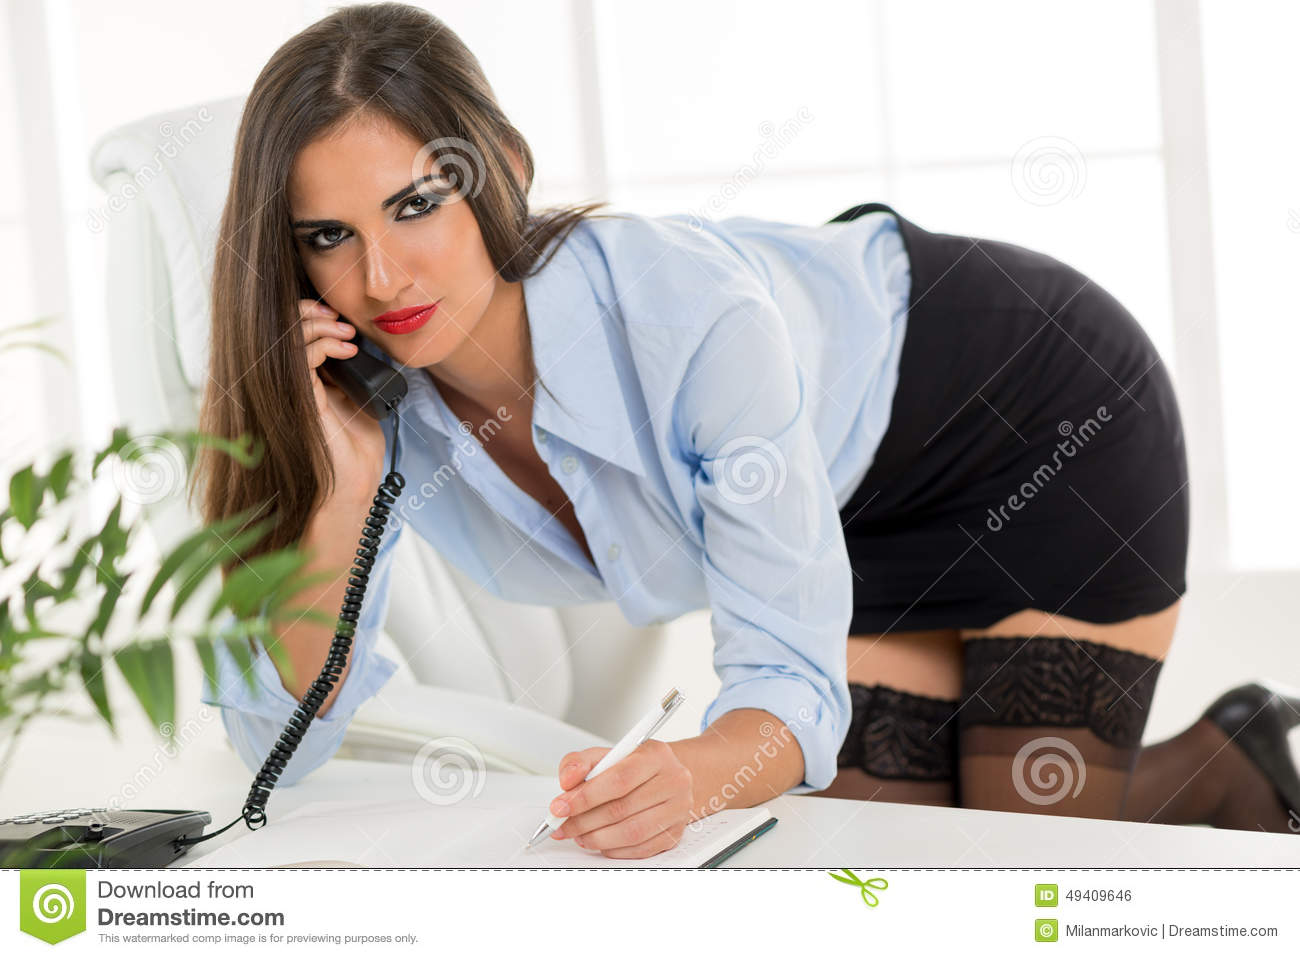 3d planner with Stock Photo Sexy Secretary Phoning Young Pretty Woman Short Skirt Kneeling Office Chair Leaning Office Desk Written Image49409646 on 739434832539650071 likewise July 2016 Calendar 6359 as well Town Planning besides 2399592702 likewise Identifying Various Gym Equipment With Images.